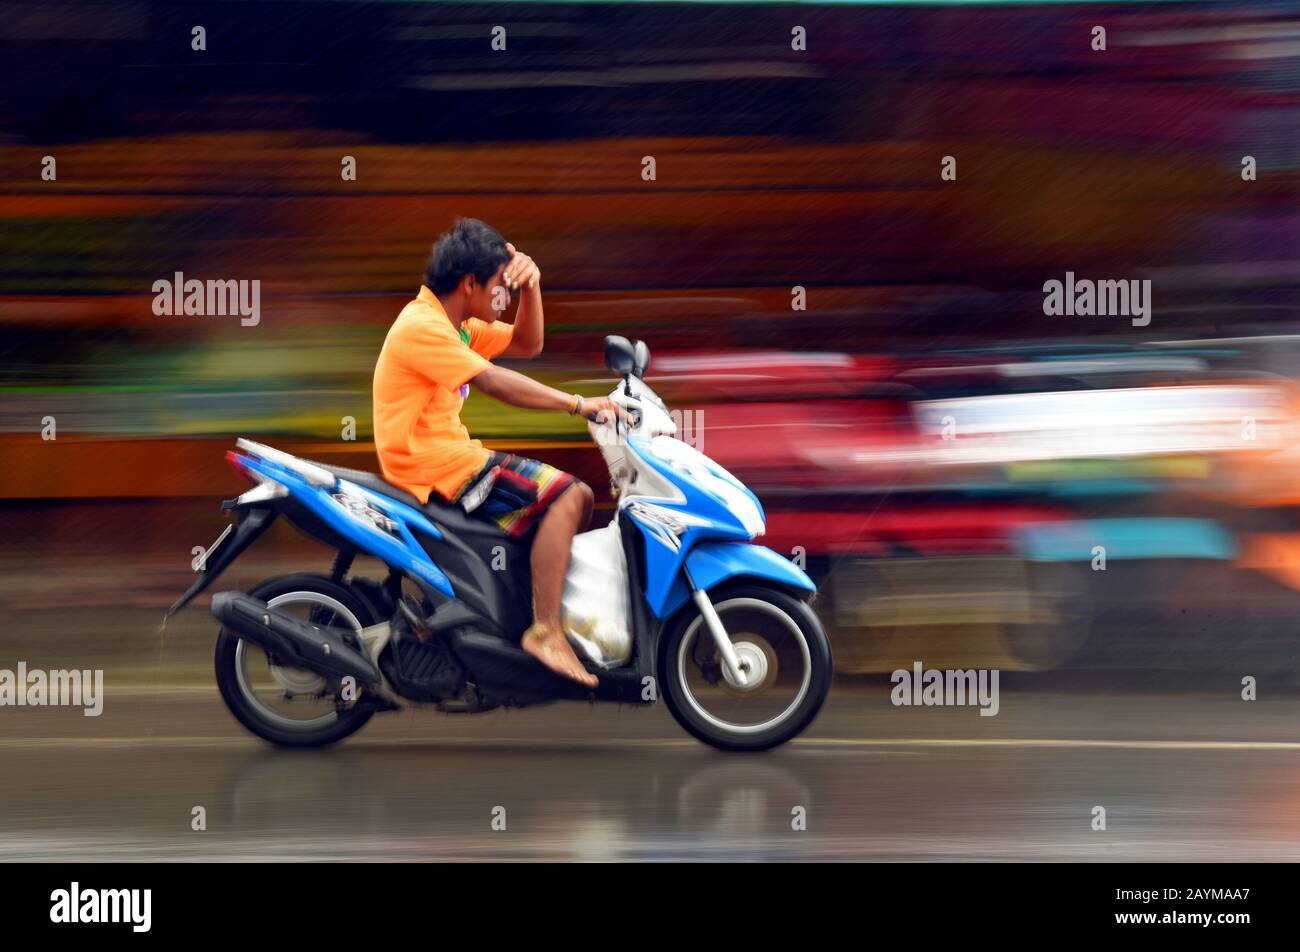 motorcyclist protecting the eyes with the hand against the rain, Thailand, Phuket Stock Photo